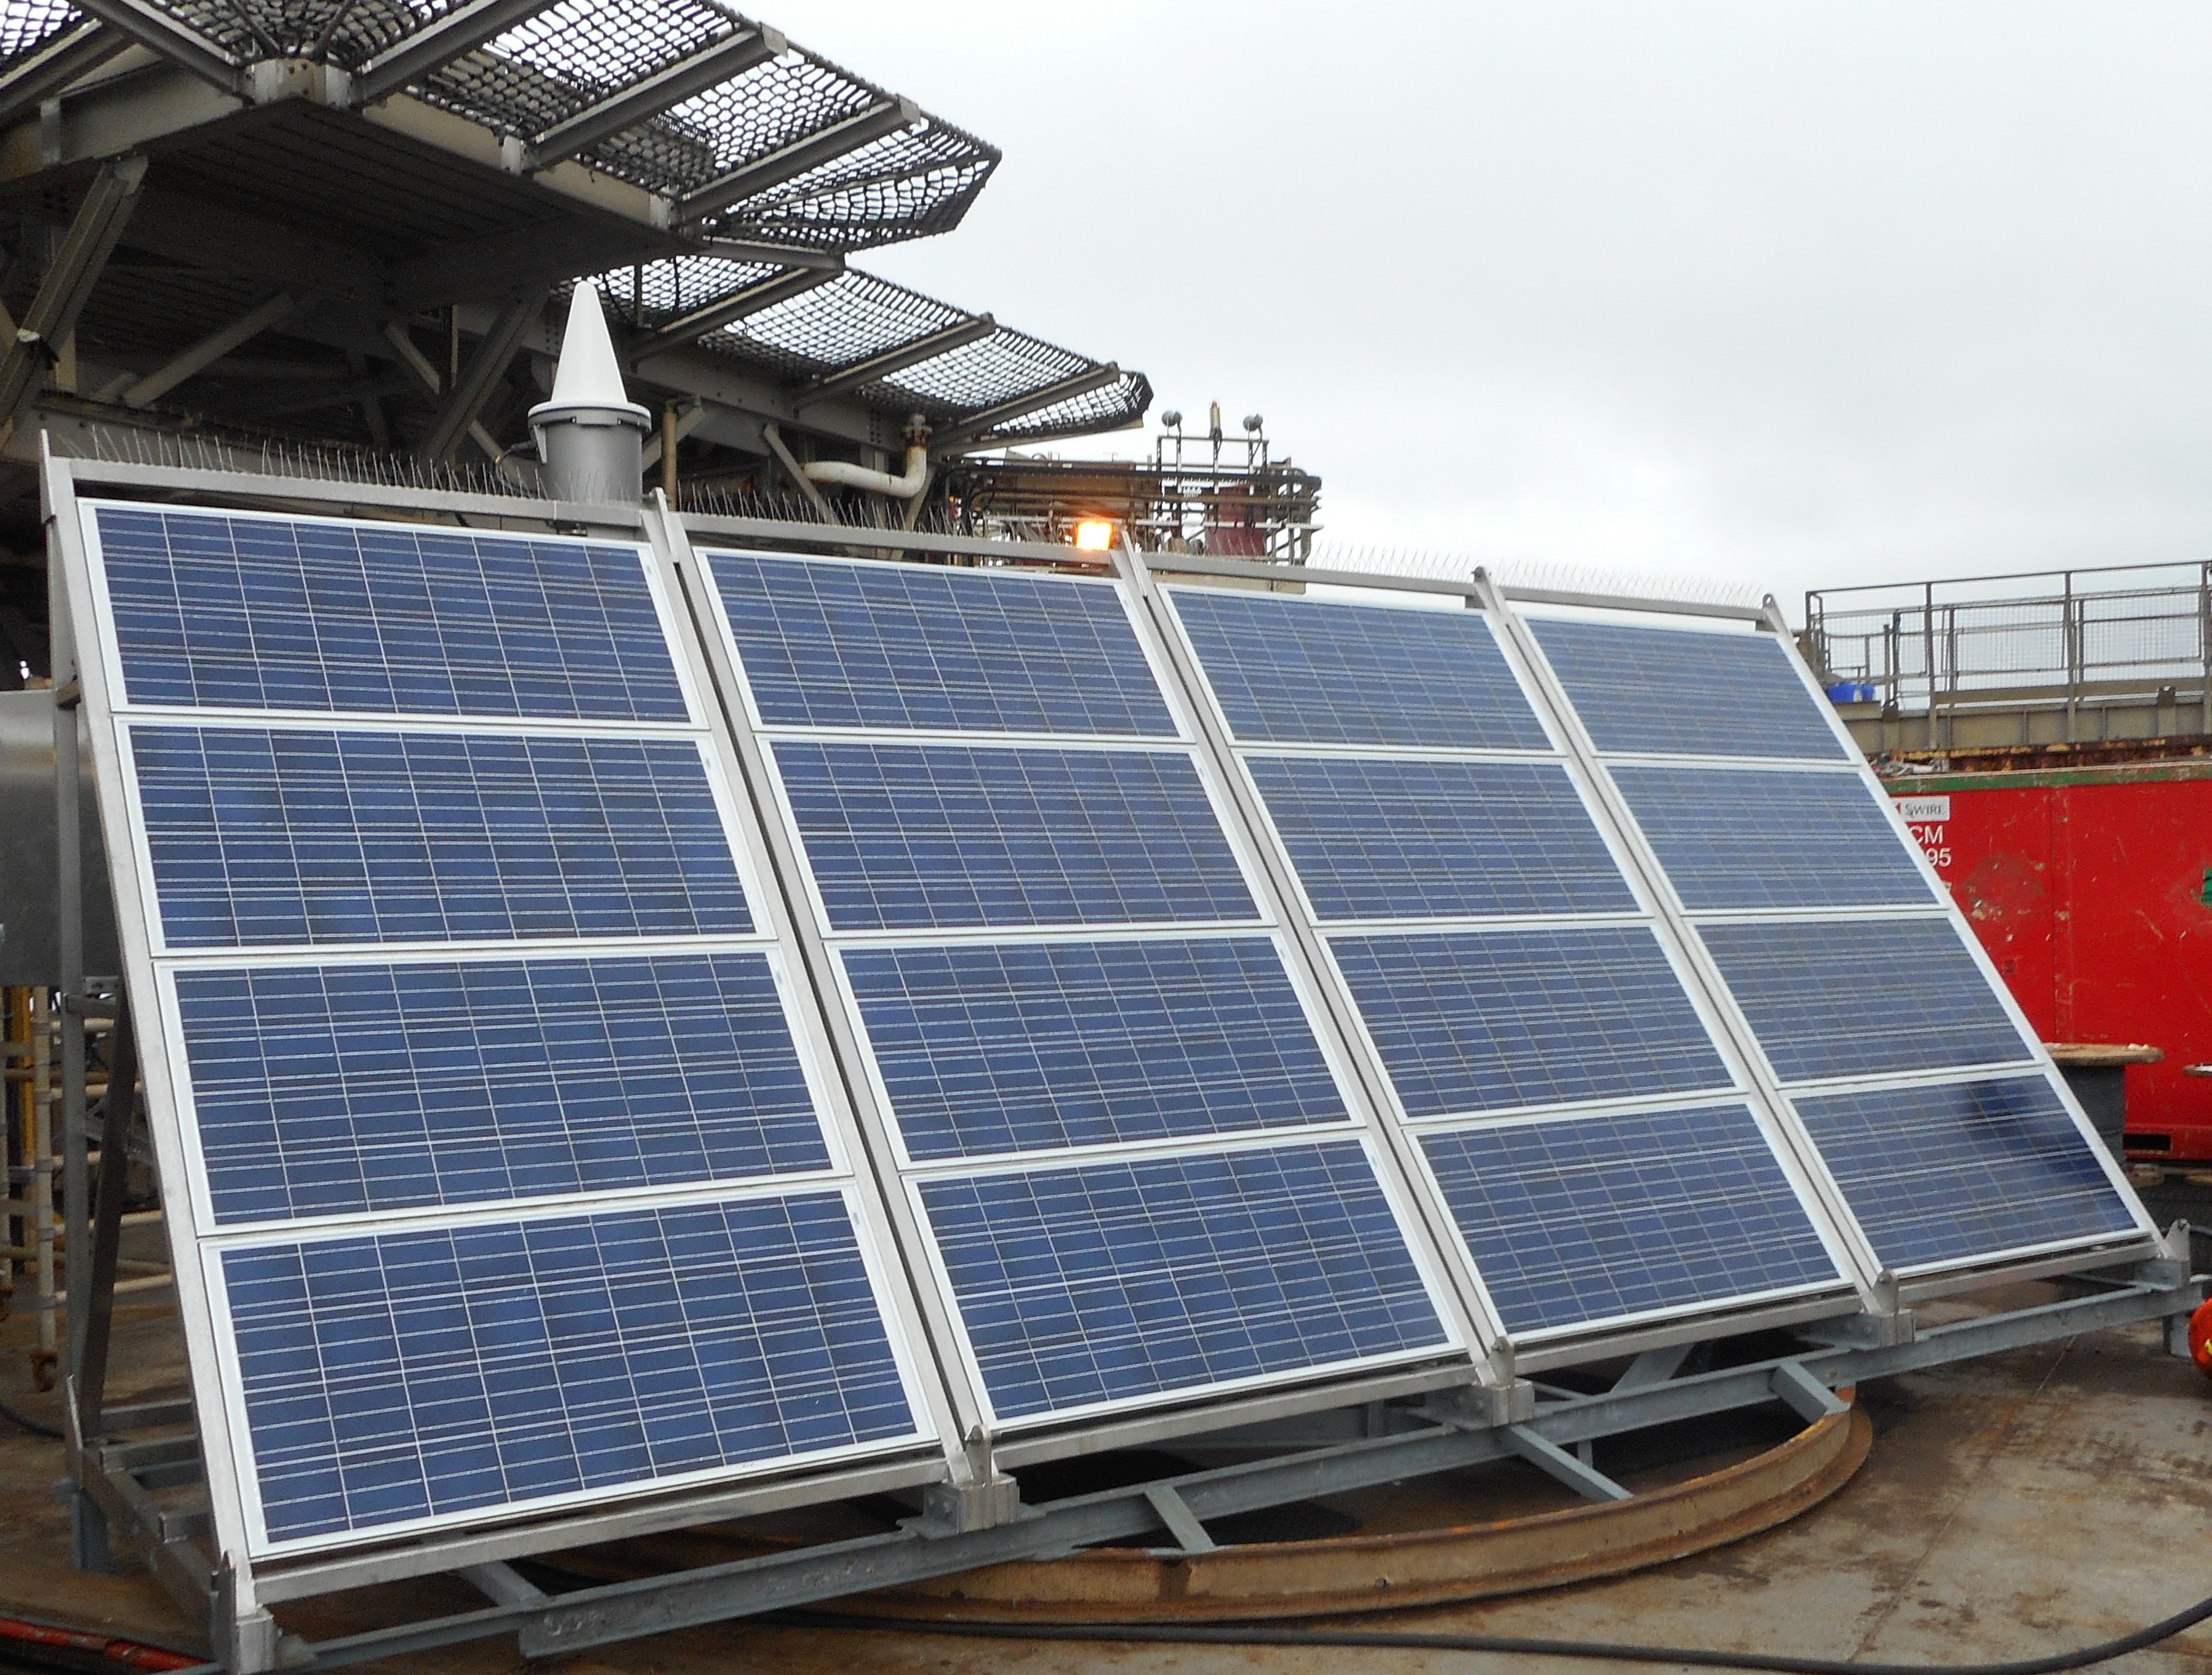 Pharos solar skid installed on the Brent Delta platform